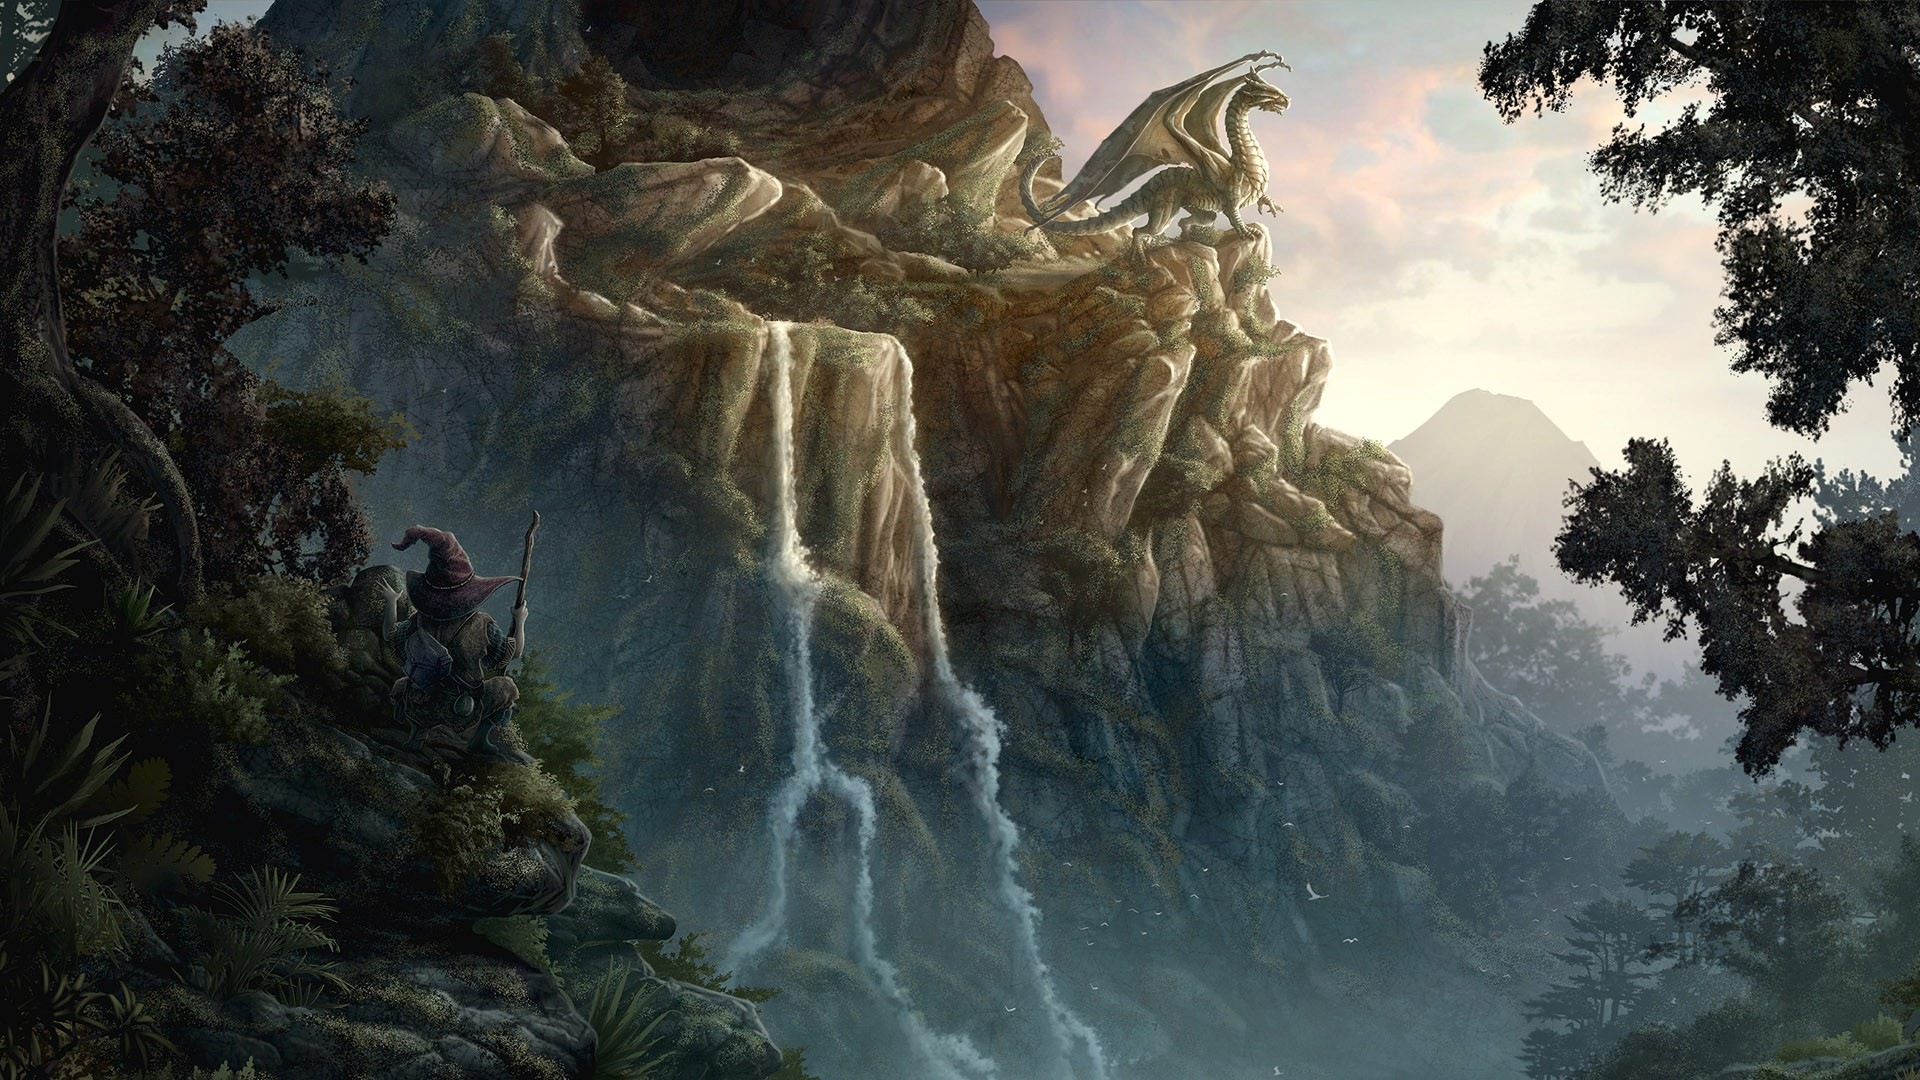 Fantasy Art Wallpaper 1920x1080 47077